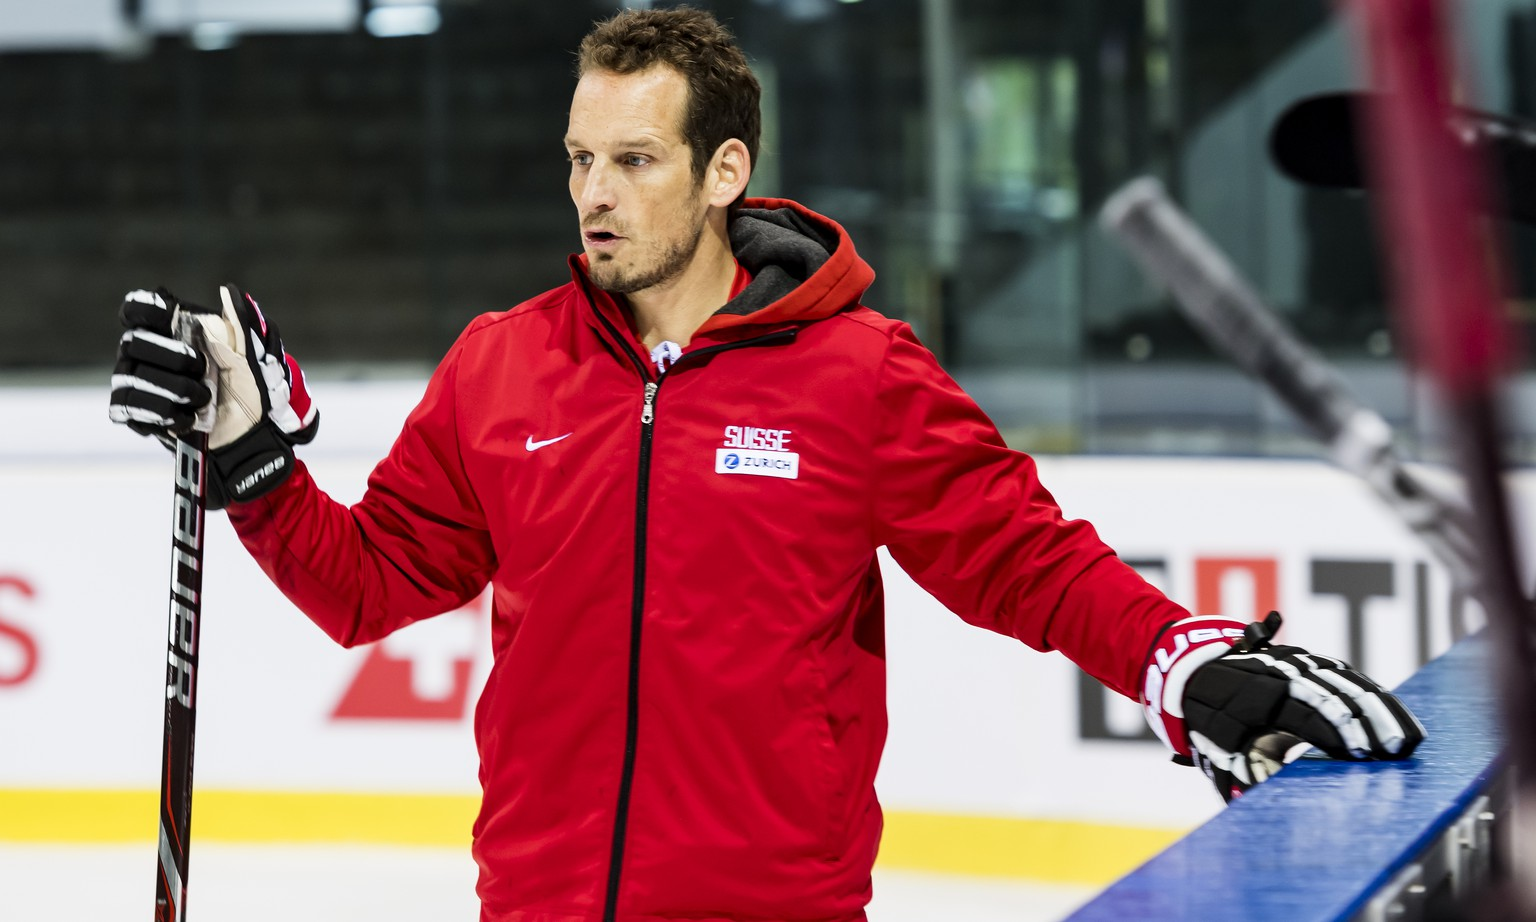 ARCHIV -- ZUM START DER EISHOCKEY WM AM FREITAG, 10. MAI 2019, STELLEN WIR IHNEN FOLGENDES BILDMATERIAL ZUR VERFUEGUNG – Patrick Fischer, head coach of Switzerland national ice hockey team, reacts during a training camp of Swiss national hockey team ahead the IIHF 2019 World Championship, at the ice stadium Les Vernets, in Geneva, Switzerland, Wednesday, April 24, 2019. (KEYSTONE/Jean-Christophe Bott)